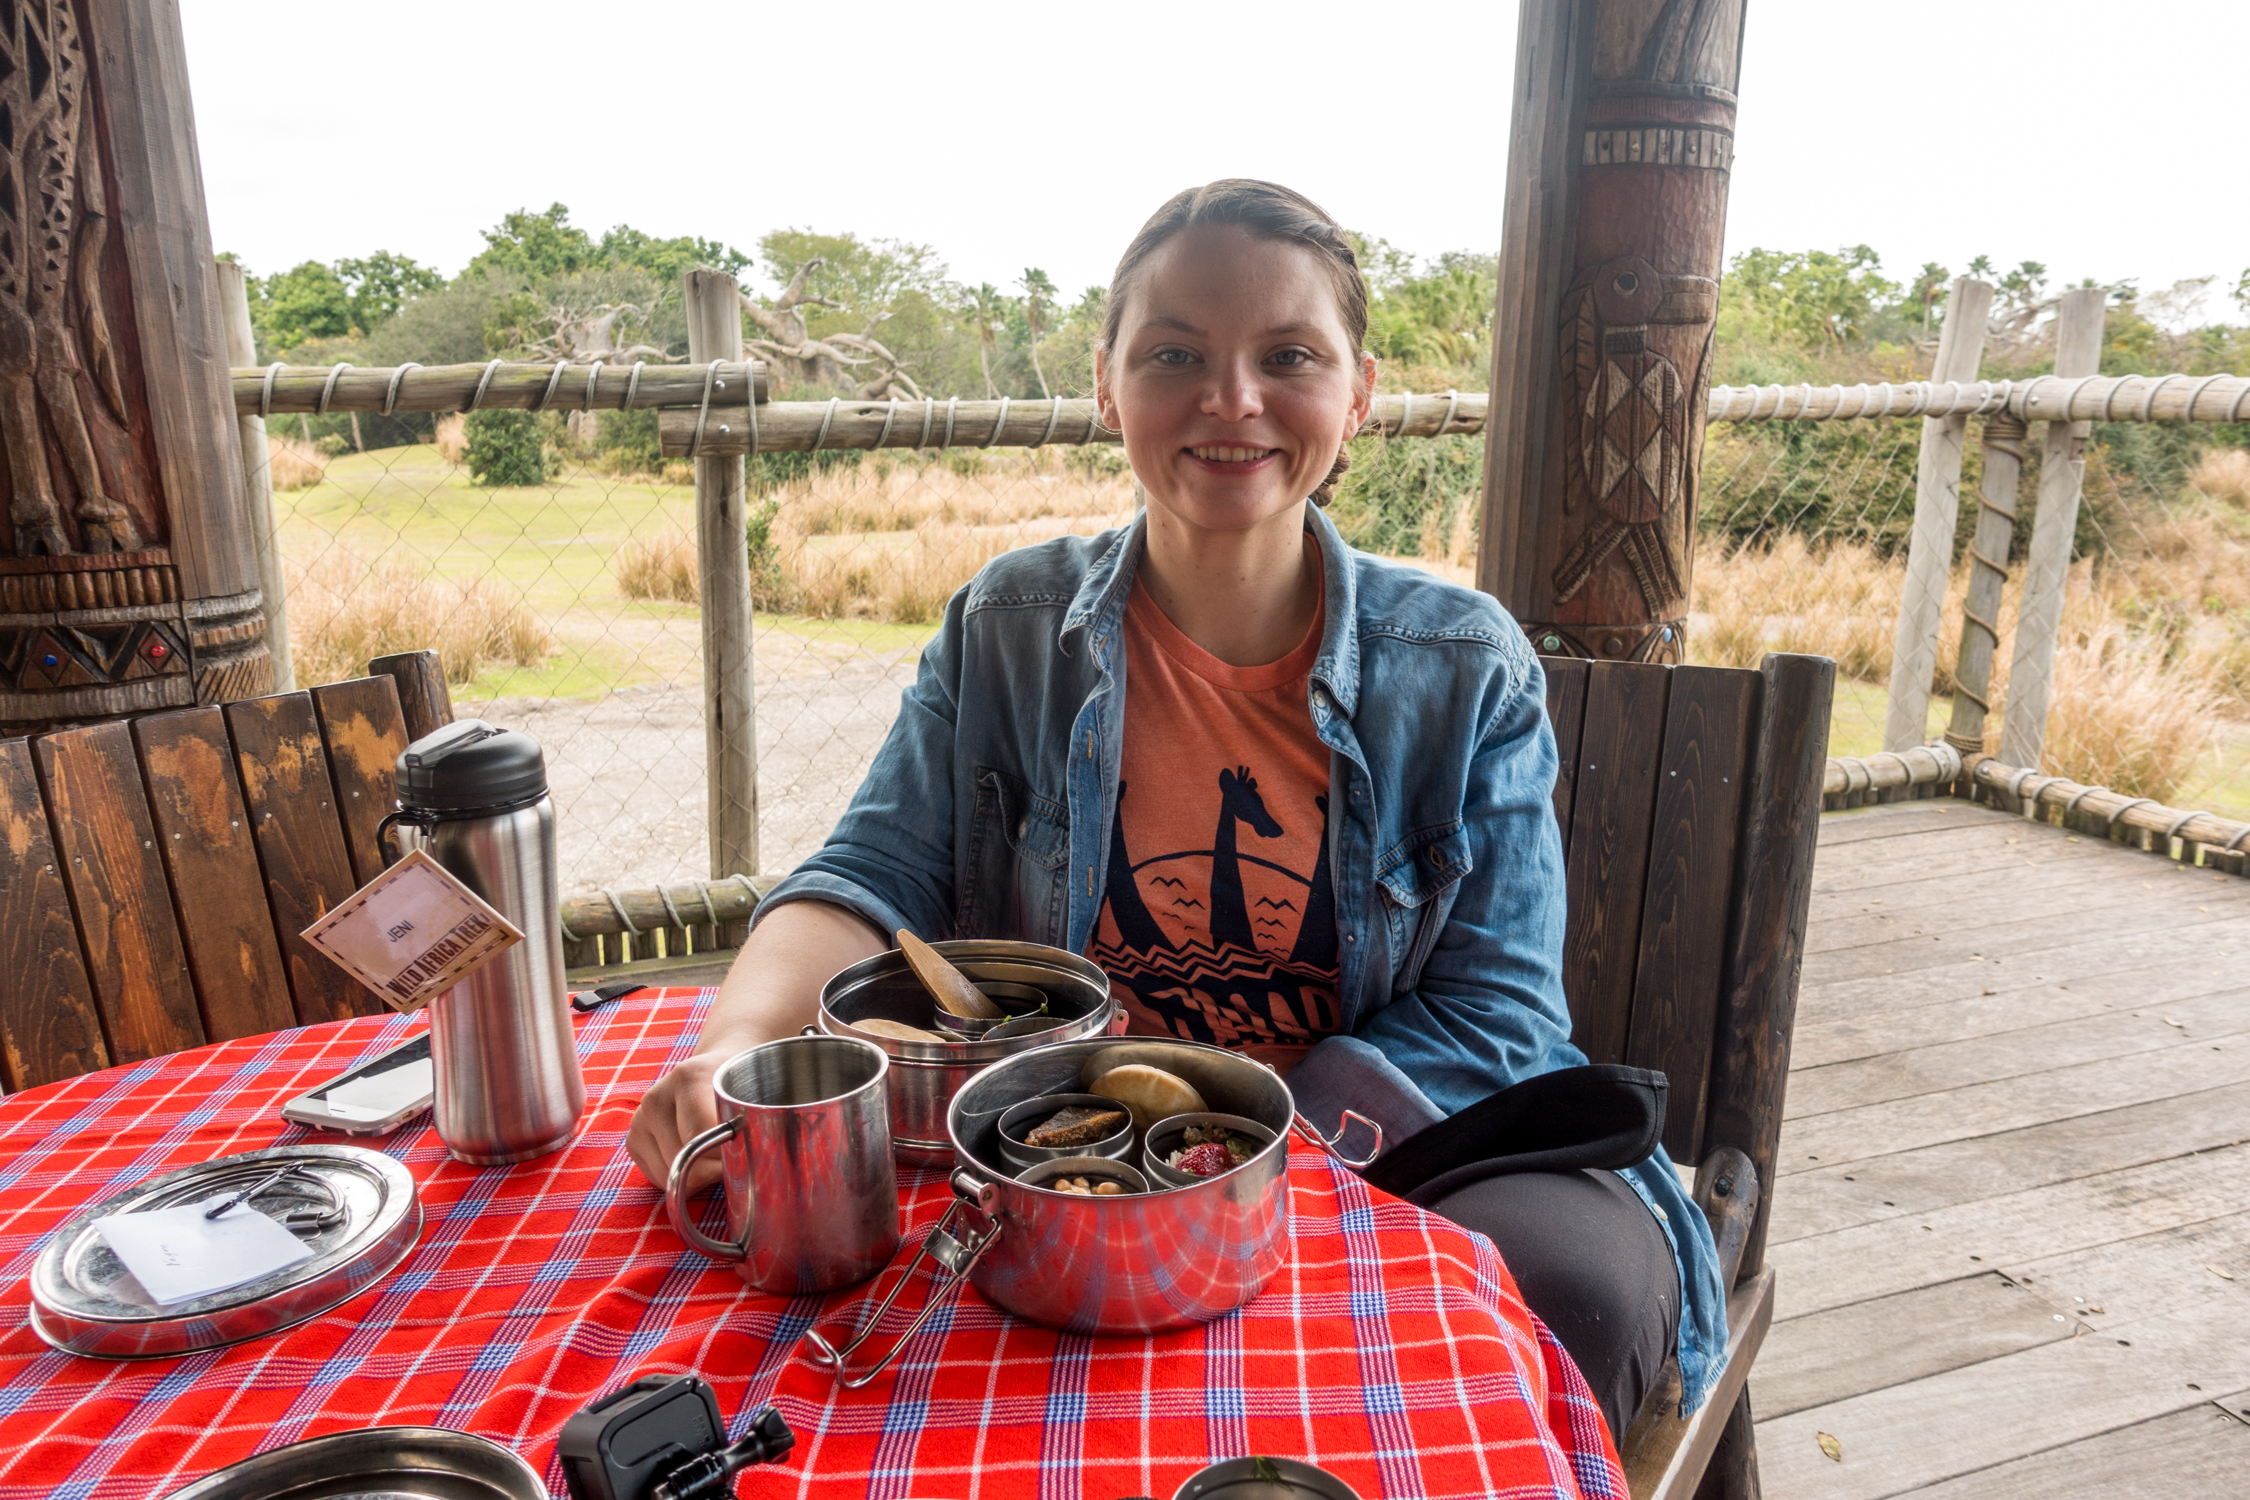 Vegan options on Disney's Wild Africa Trek #vegan #disney #vegantravel #disneyworld